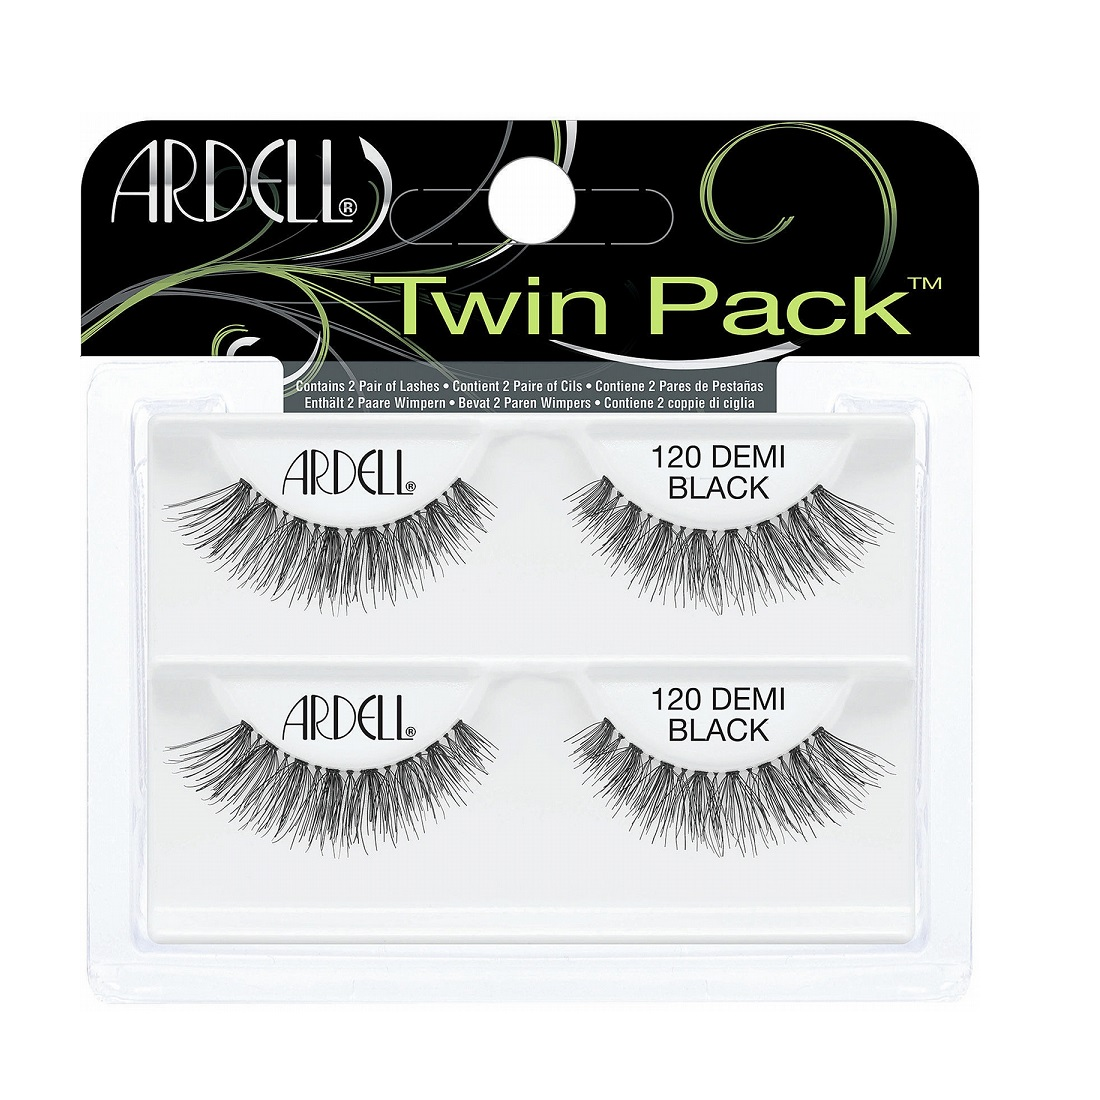 Ardell Twin Pack of 2 Lashes 120 Demi Black